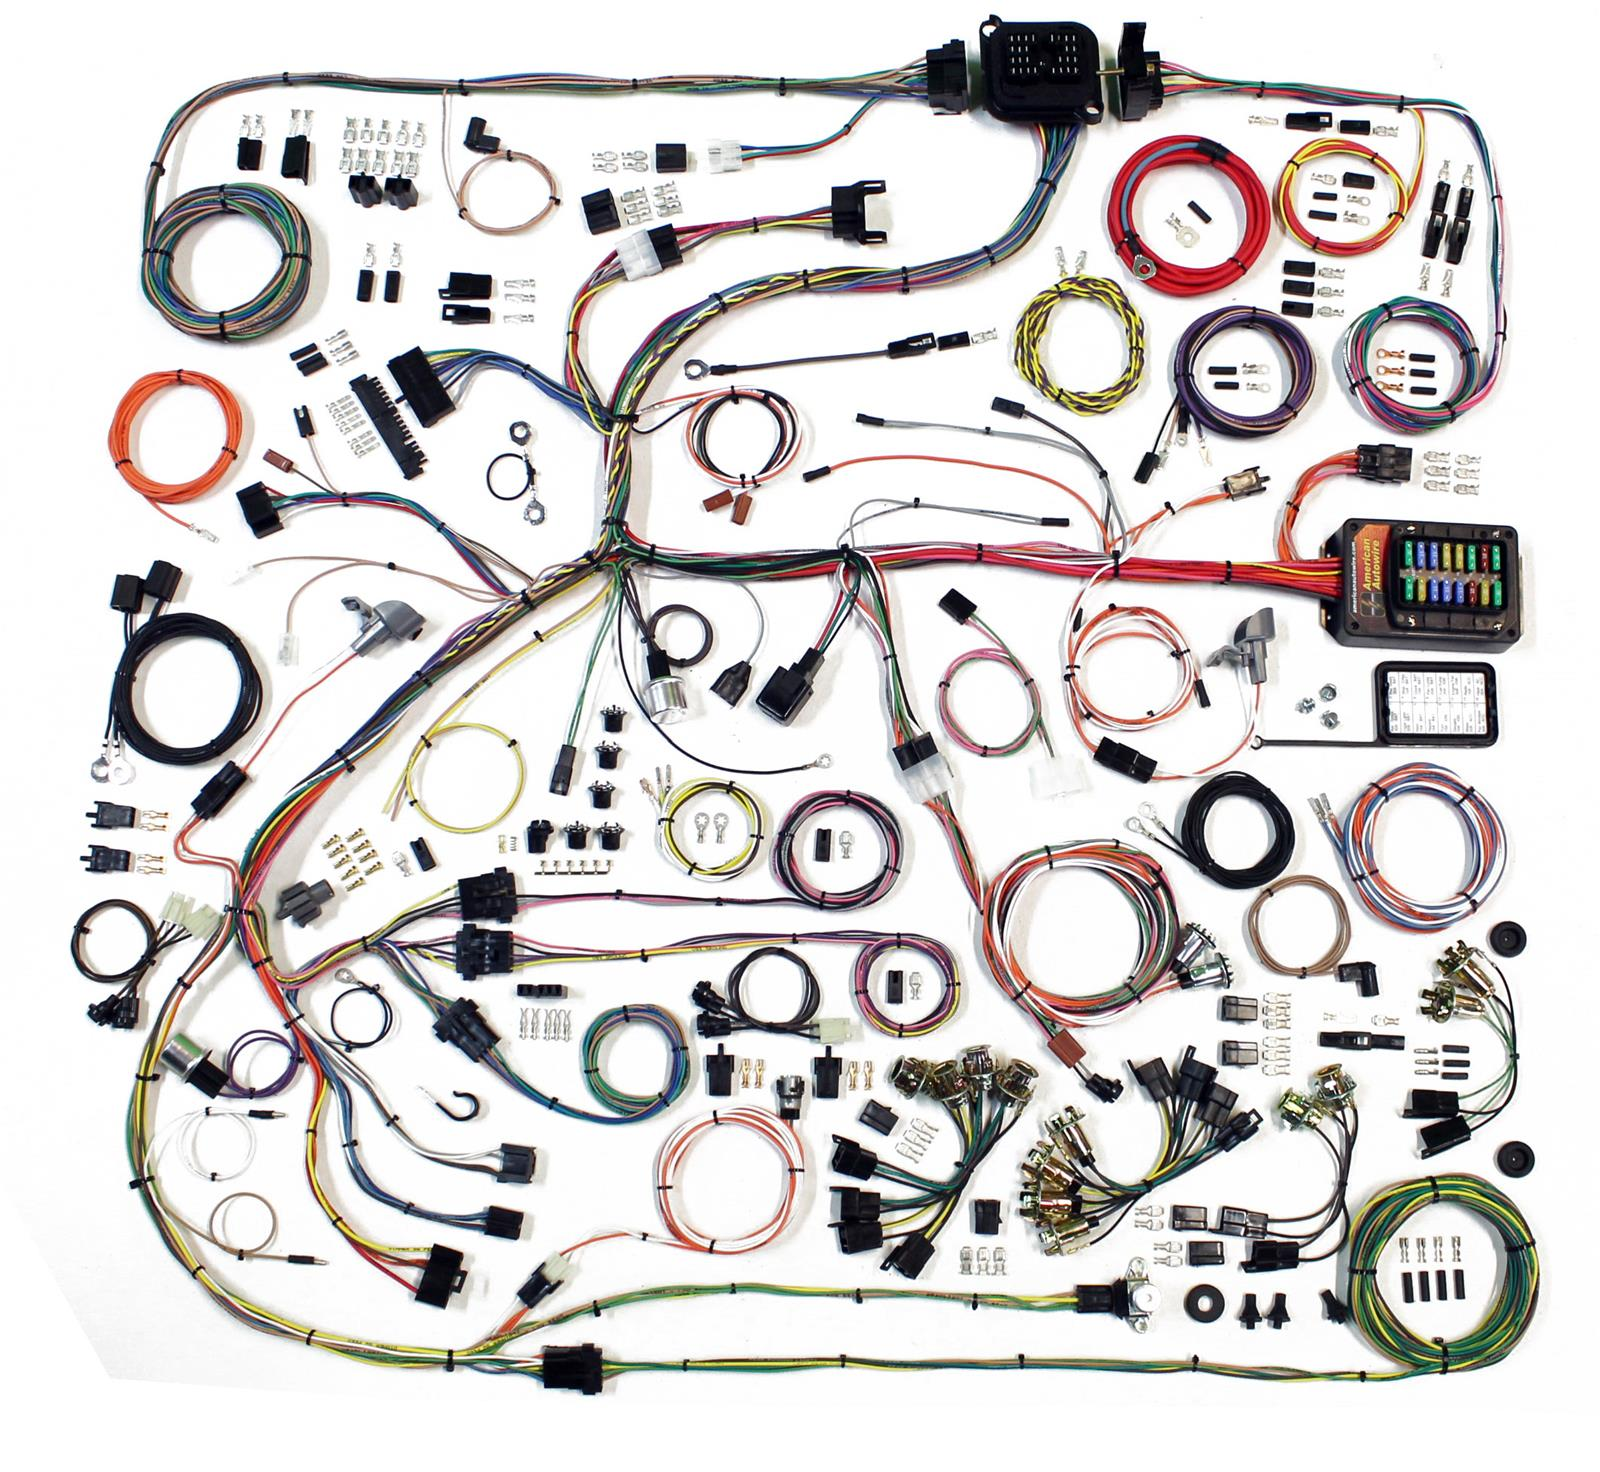 hight resolution of american autowire classic update series wiring harness kits 510634 free shipping on orders over 99 at summit racing